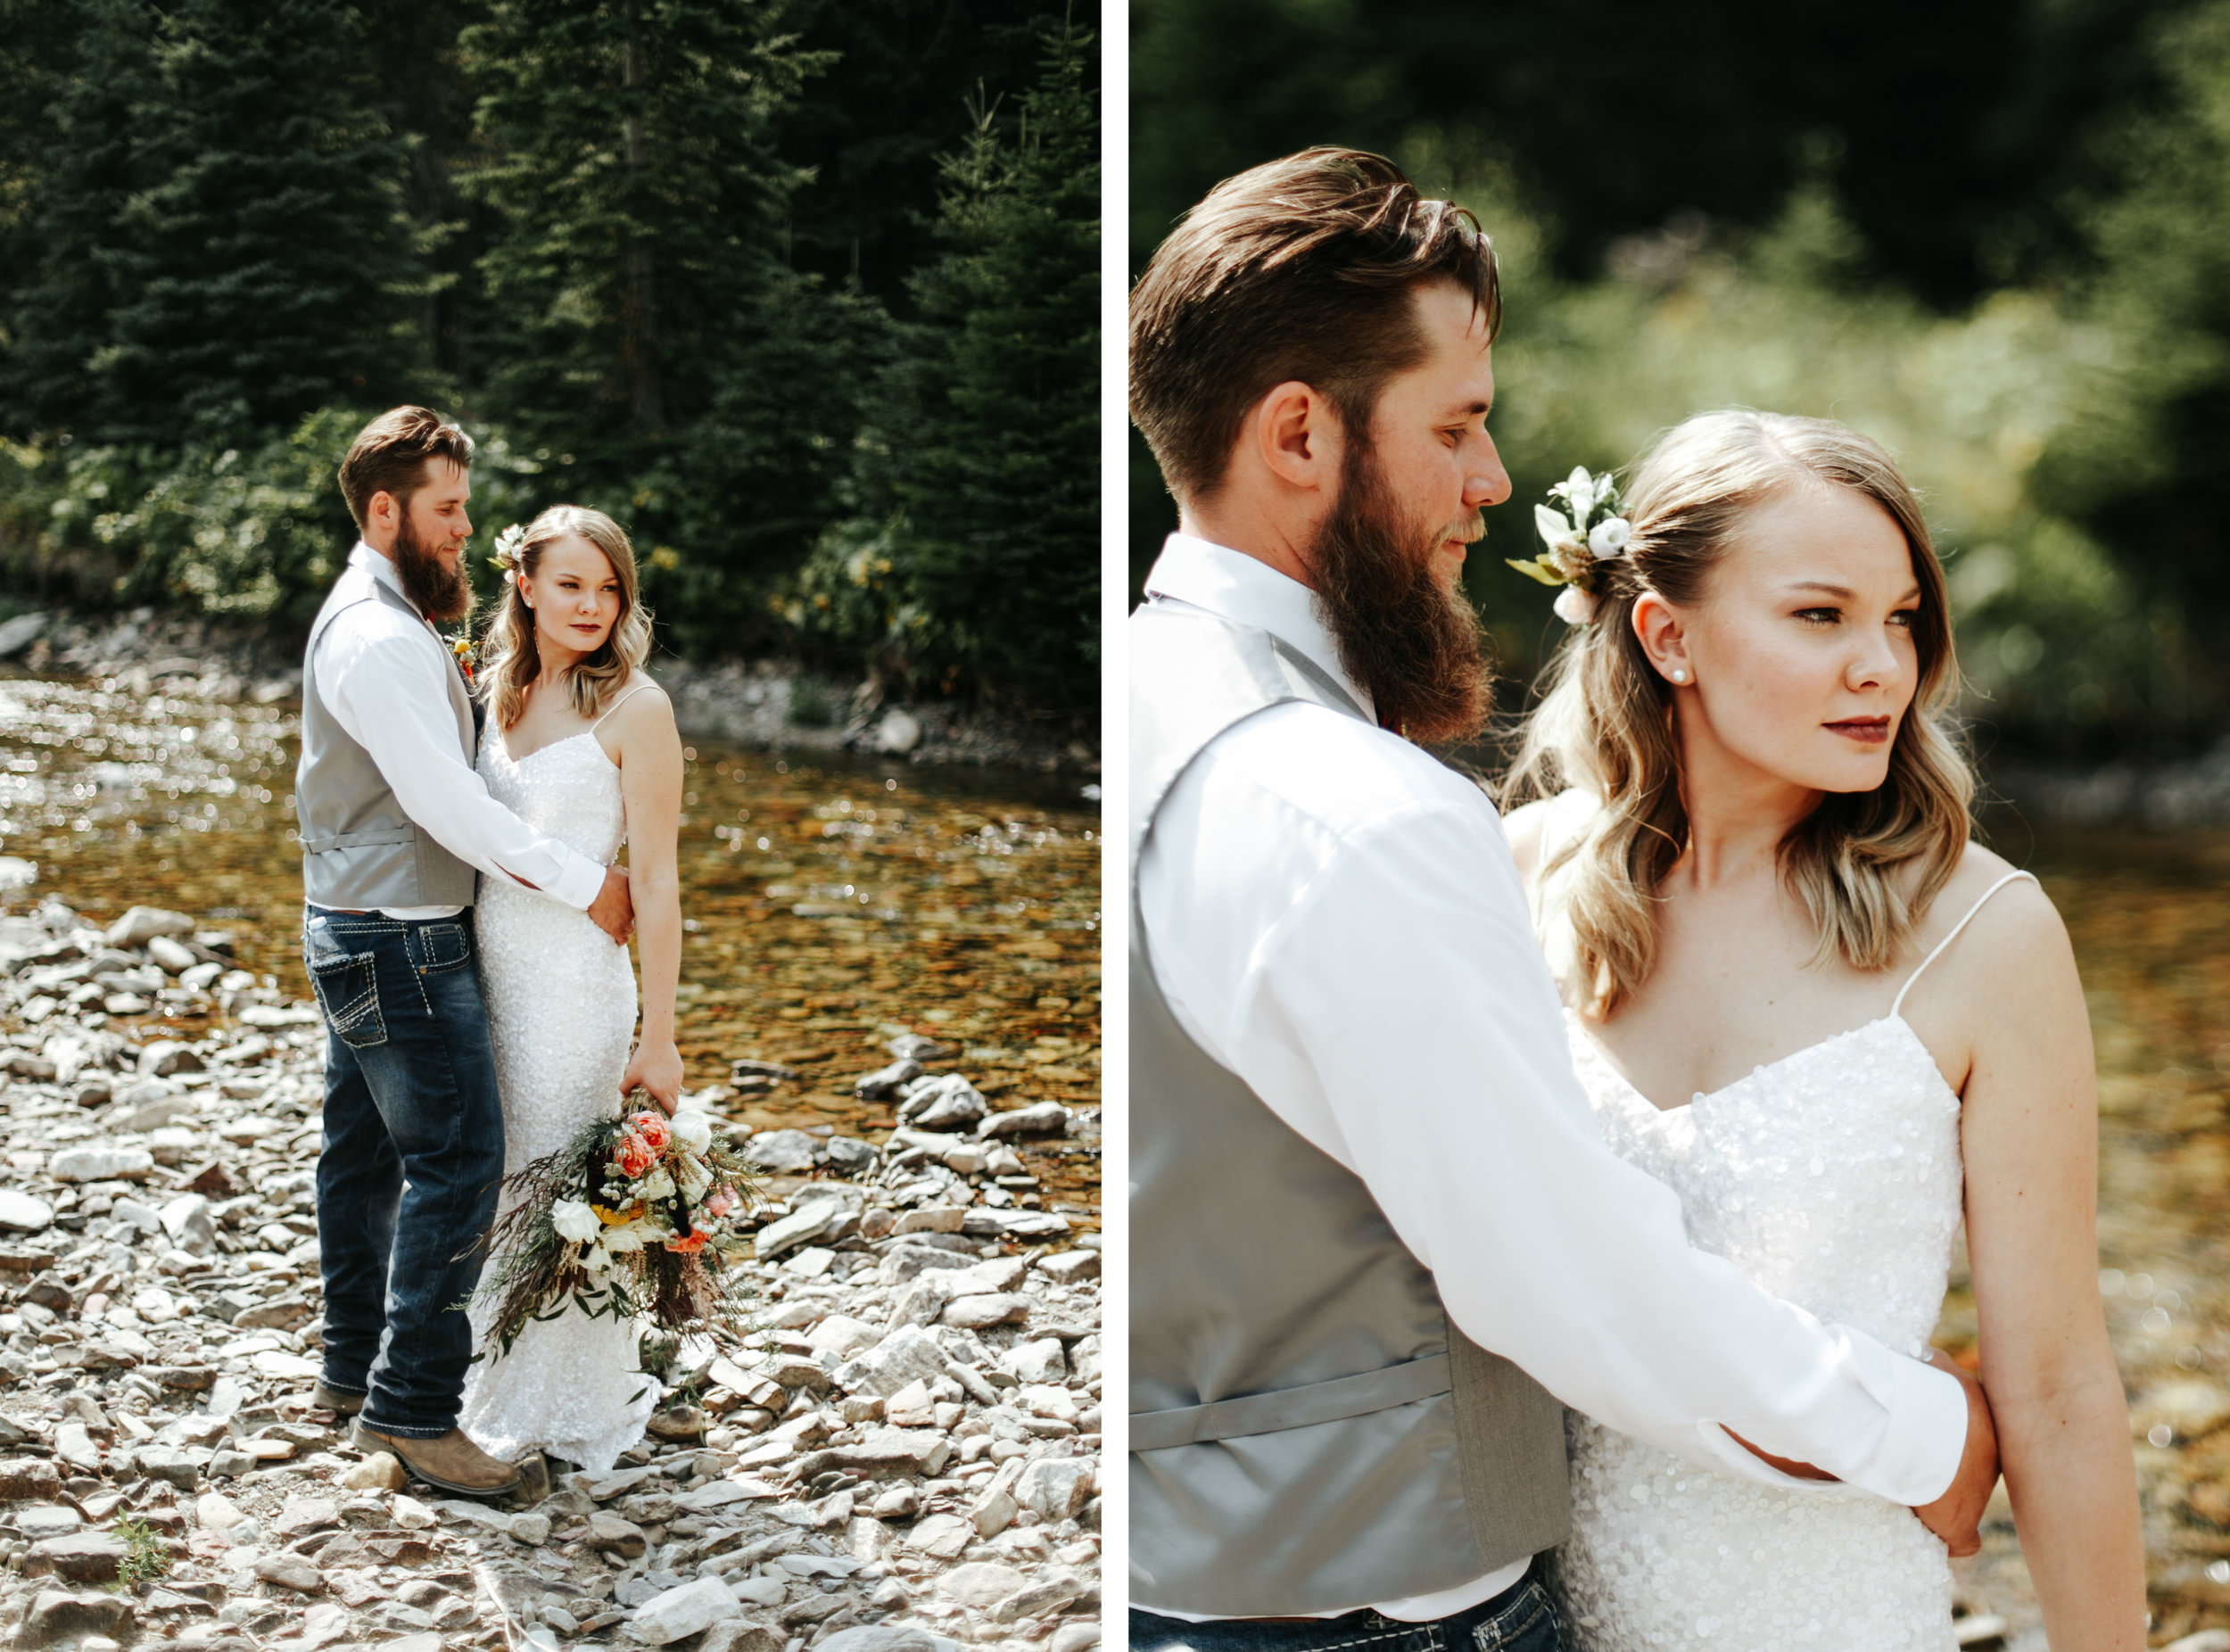 castle-mountain-wedding-photographer-love-and-be-loved-photography-lethbridge-pincher-creek-crowsnest-pass-yannick-rylee-photo-image-picture-119.jpg